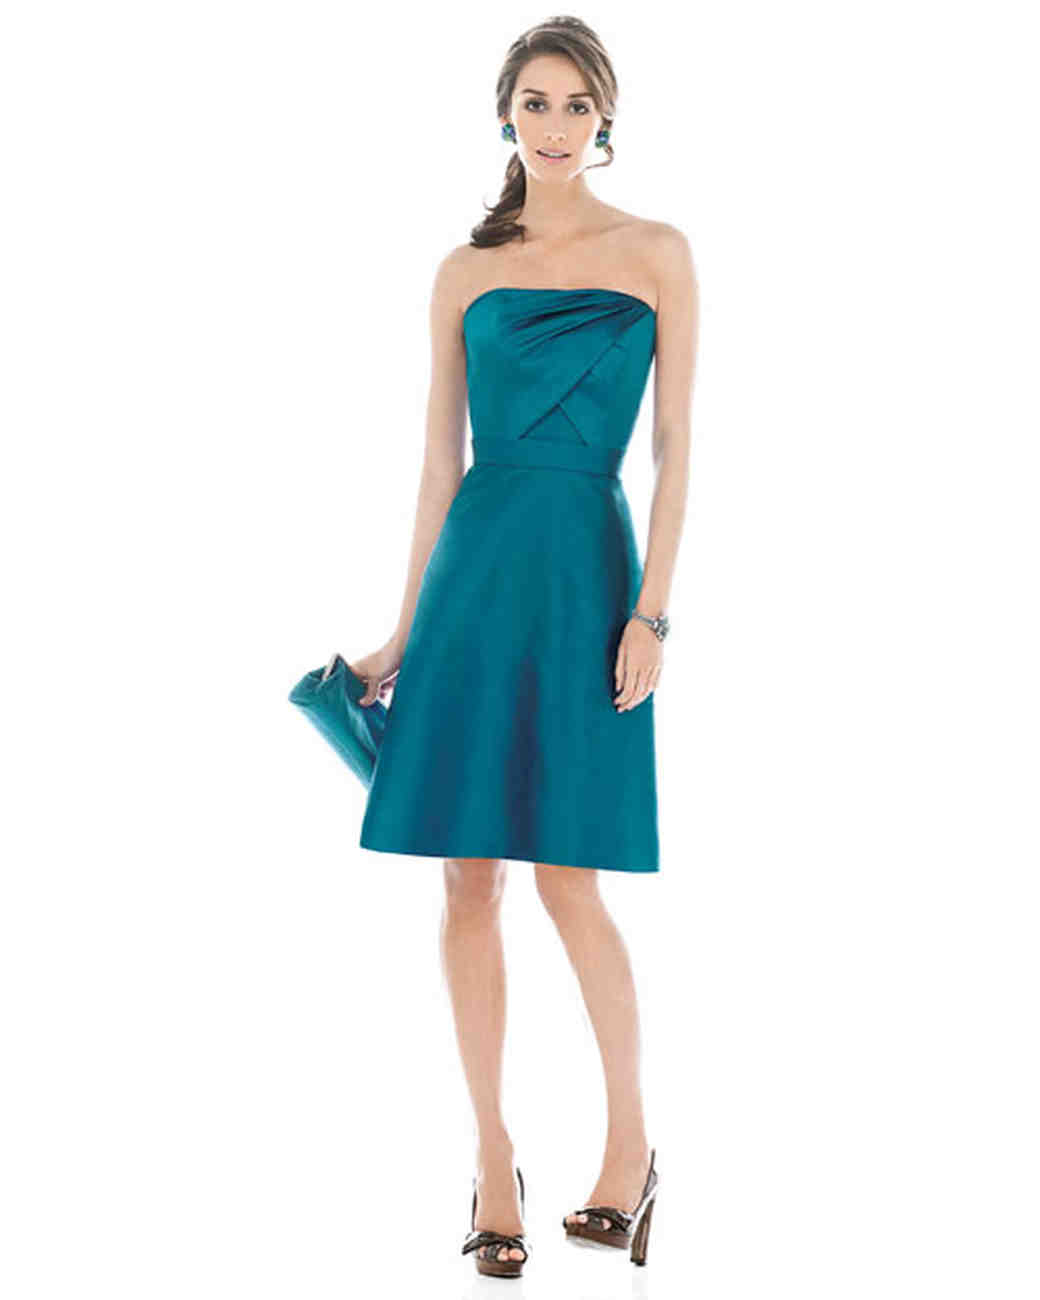 Jewel toned bridesmaid dresses martha stewart weddings ombrellifo Choice Image